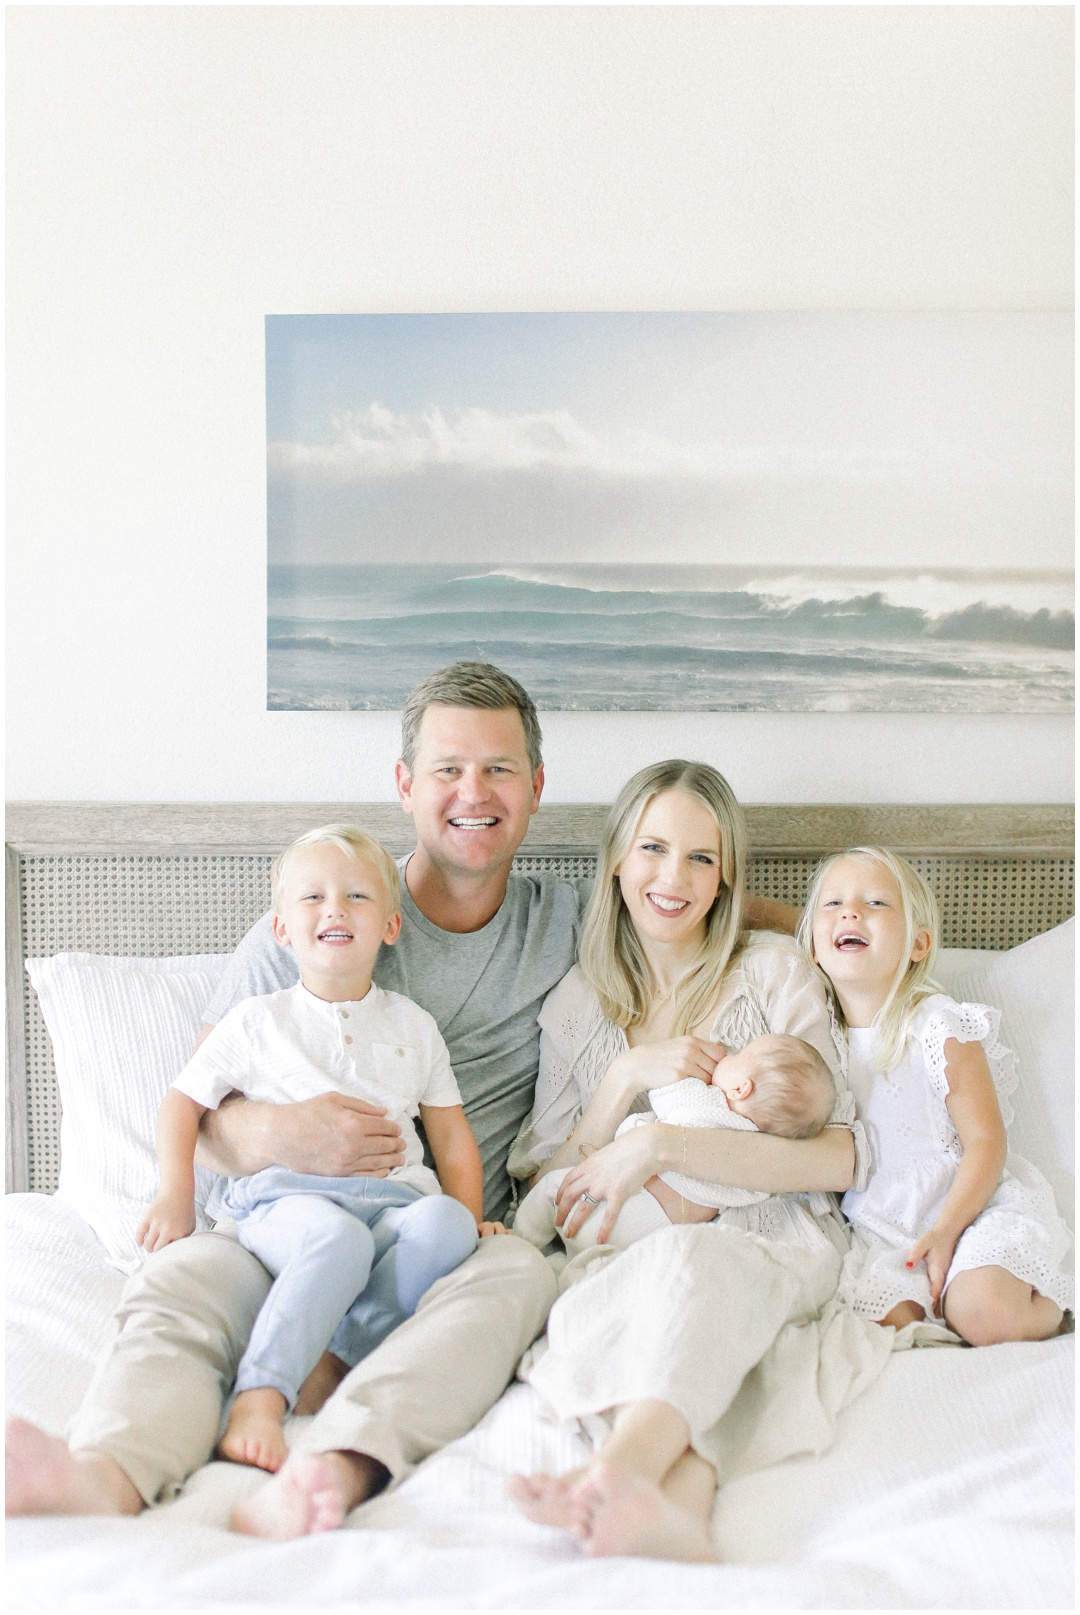 Newport_Beach_Newborn_Light_Airy_Natural_Photographer_Newport_Beach_Photographer_Orange_County_Family_Photographer_Cori_Kleckner_Photography_Newport_Beach_Photographer_Courtney_Roach__4101.jpg